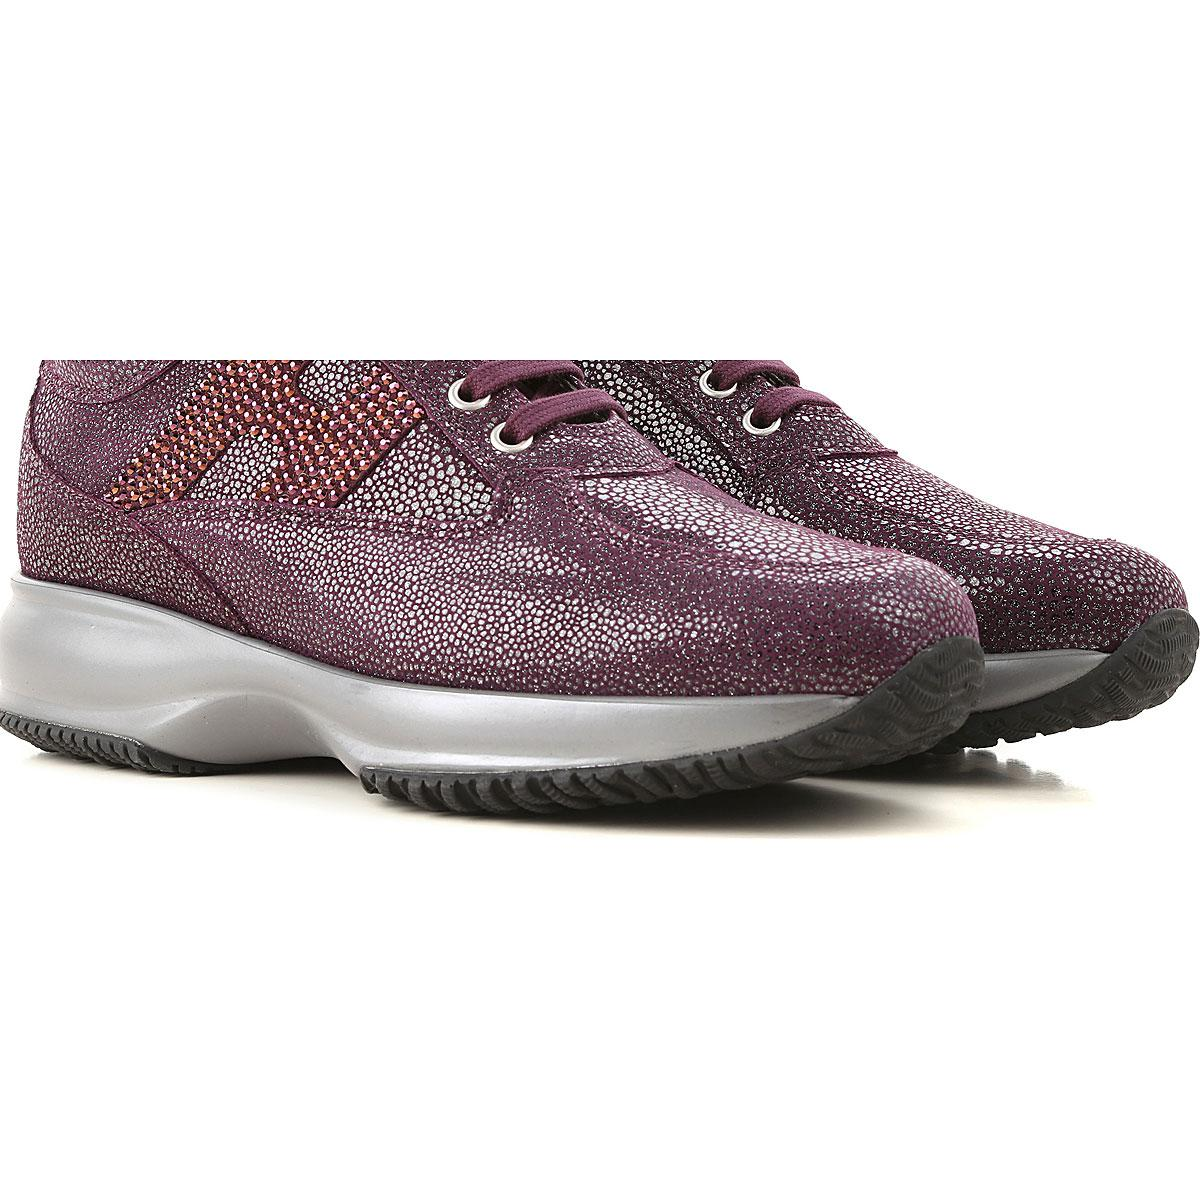 0ee63d55b1d Lyst - Hogan Shoes For Women in Purple